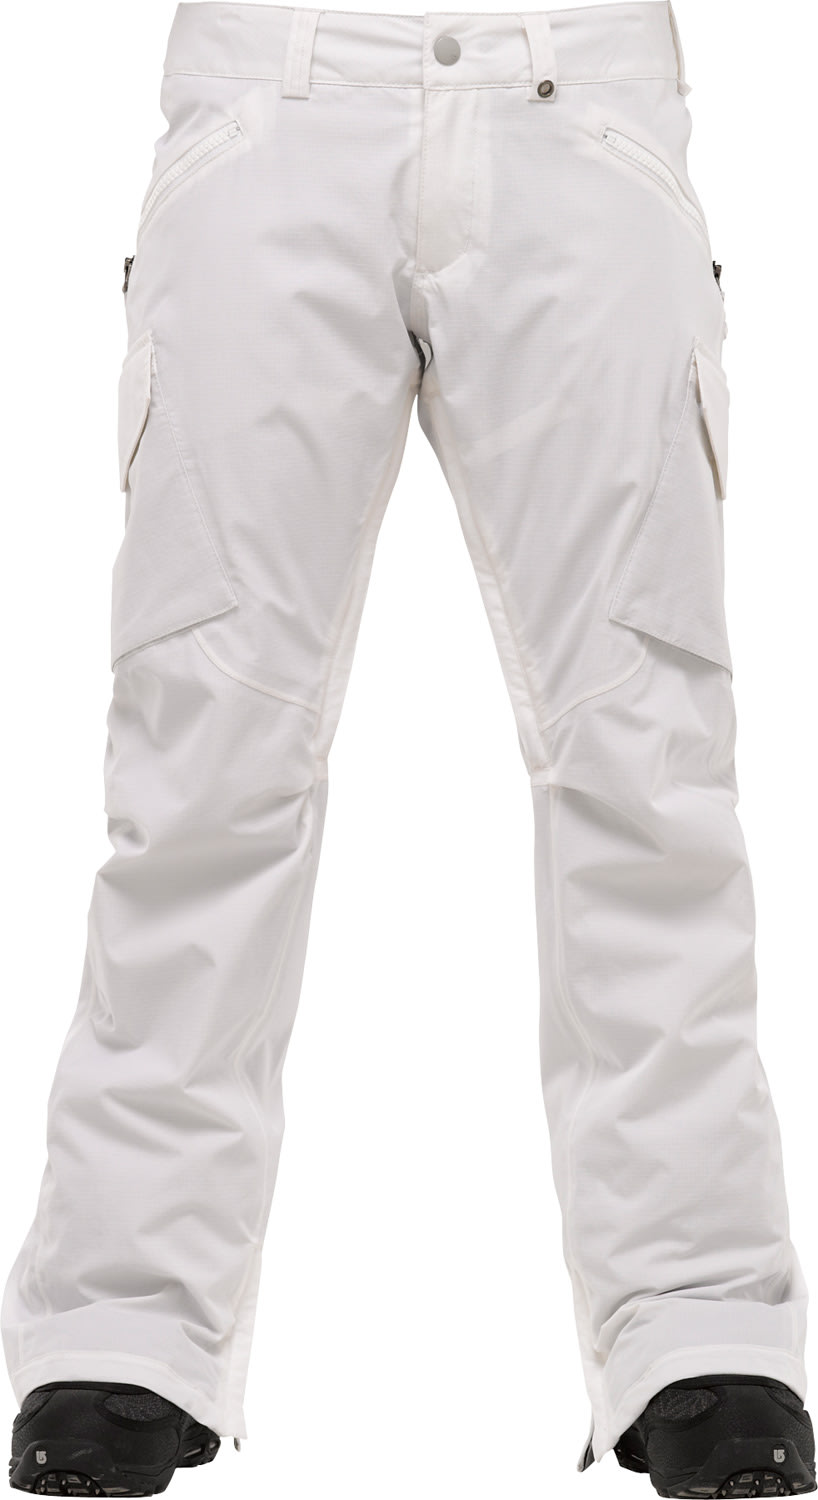 Shop for Burton Basis Snowboard Pants Bright White - Women's